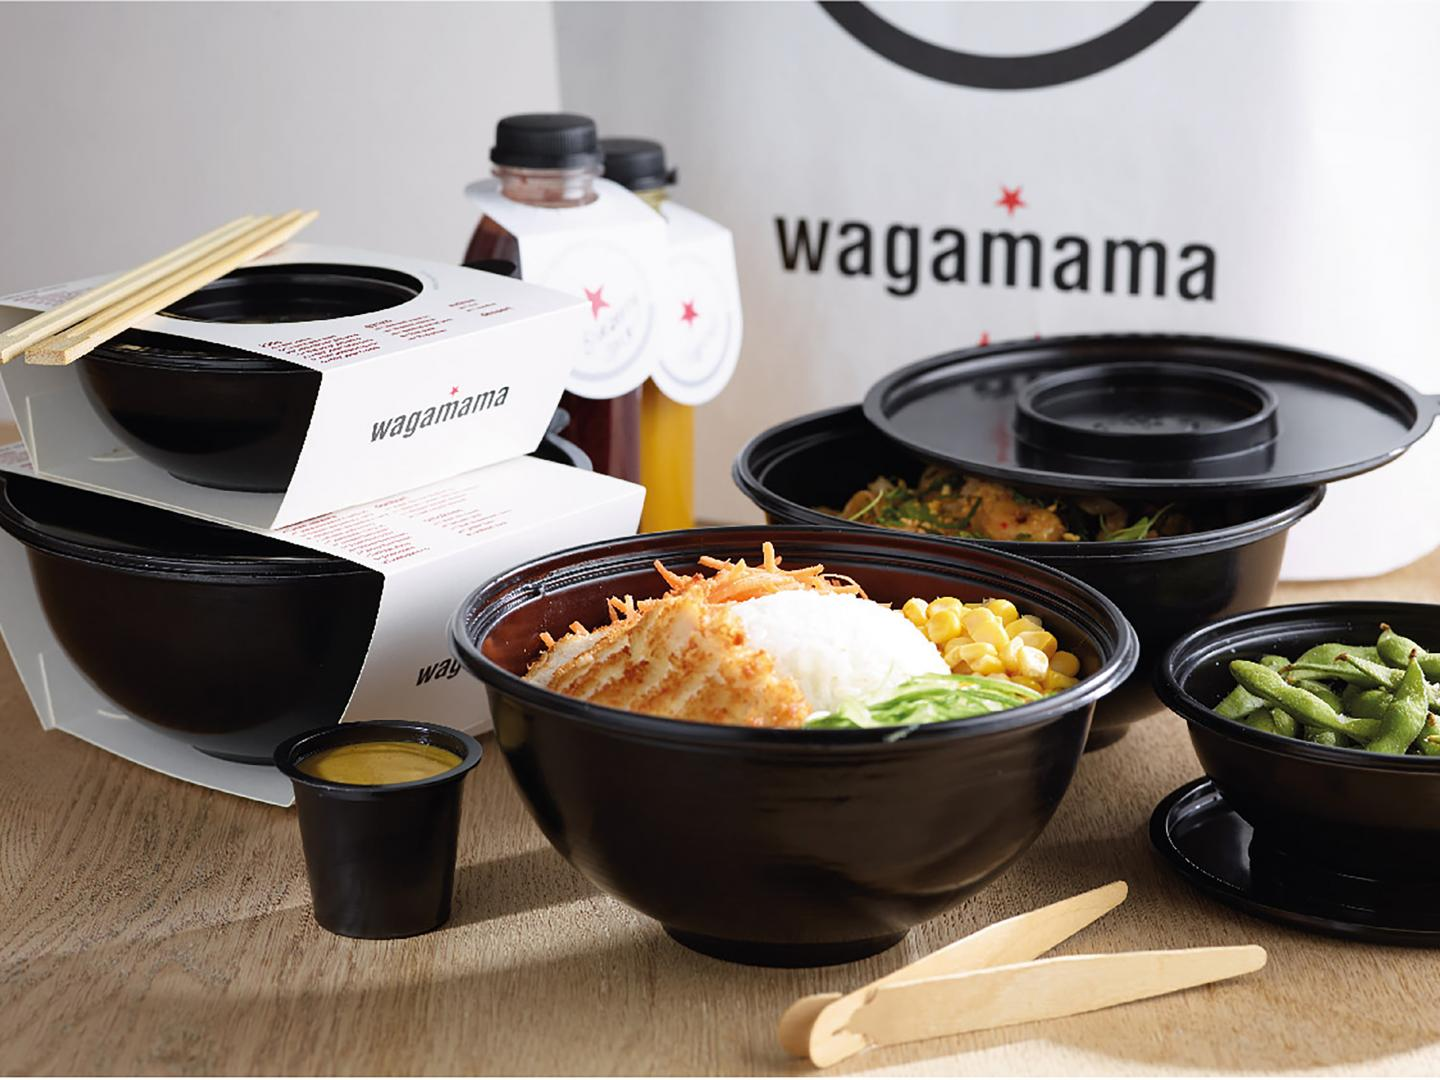 Wagamama Takeout Experience Thumbnail